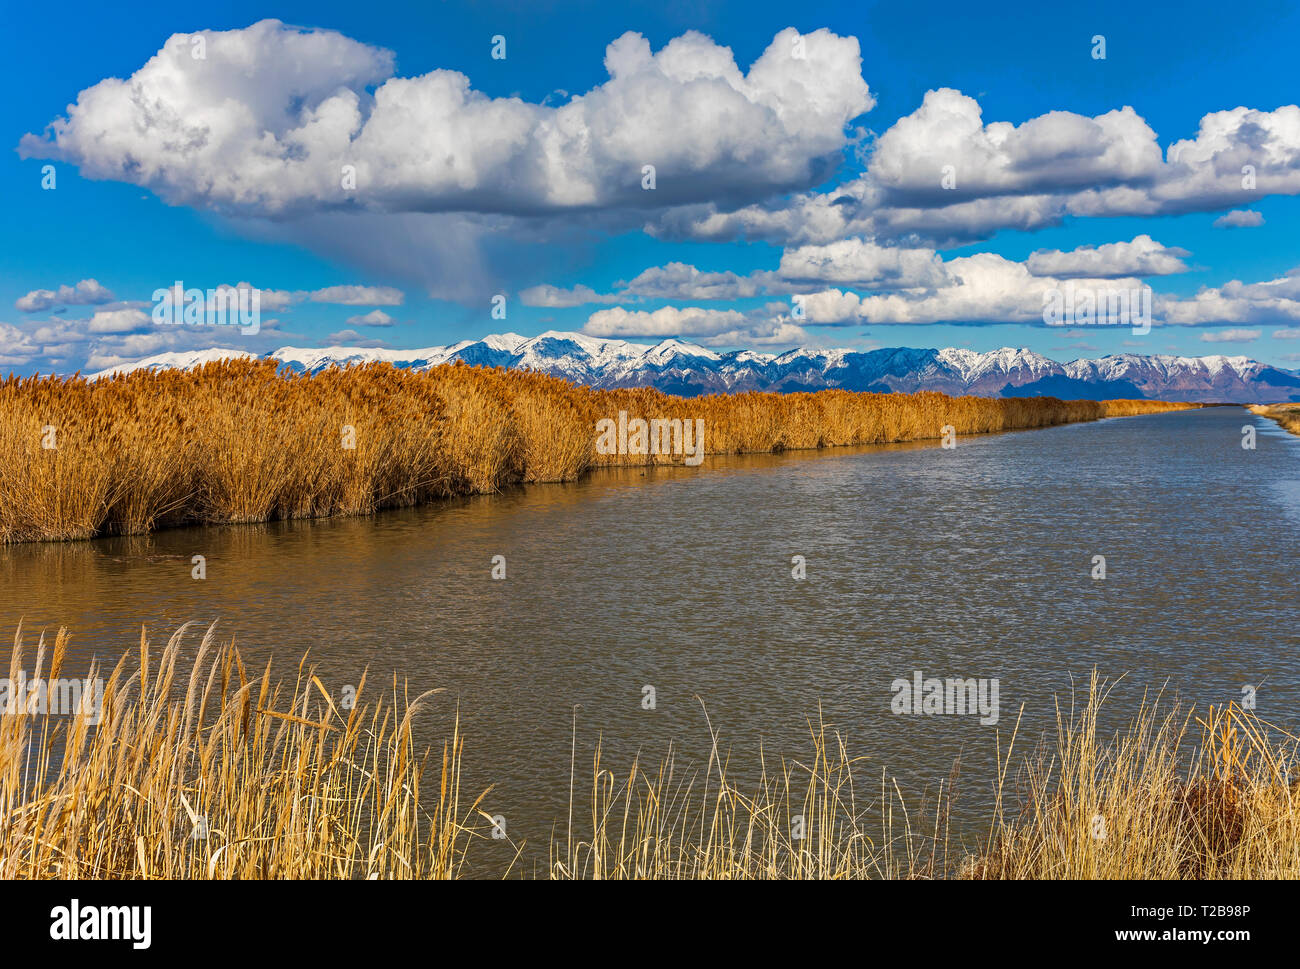 This is a view looking east up the Bear River channel on a beautiful springtime day at the Bear River Migratory Bird Refuge near Brigham City, Utah. - Stock Image